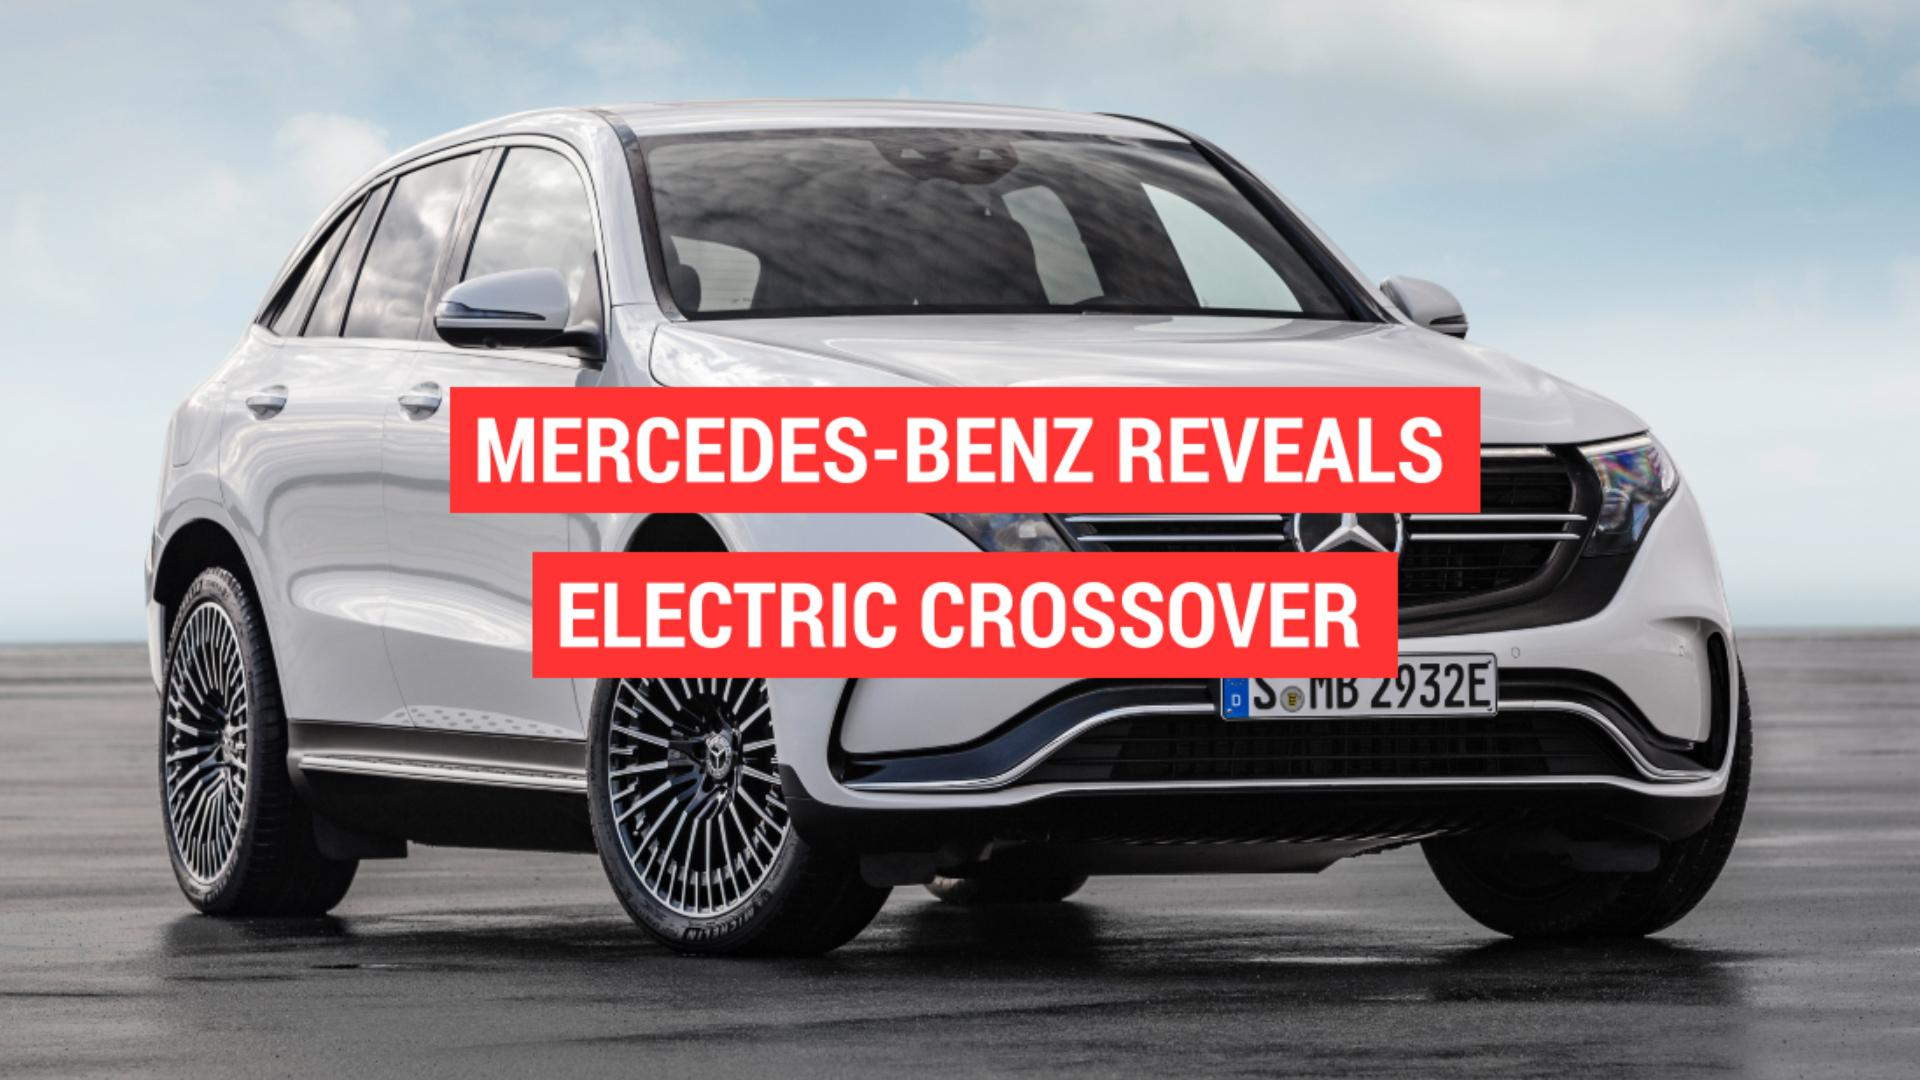 2020 Mercedes-Benz GLE revealed with mountains of tech to feed the crossover frenzy